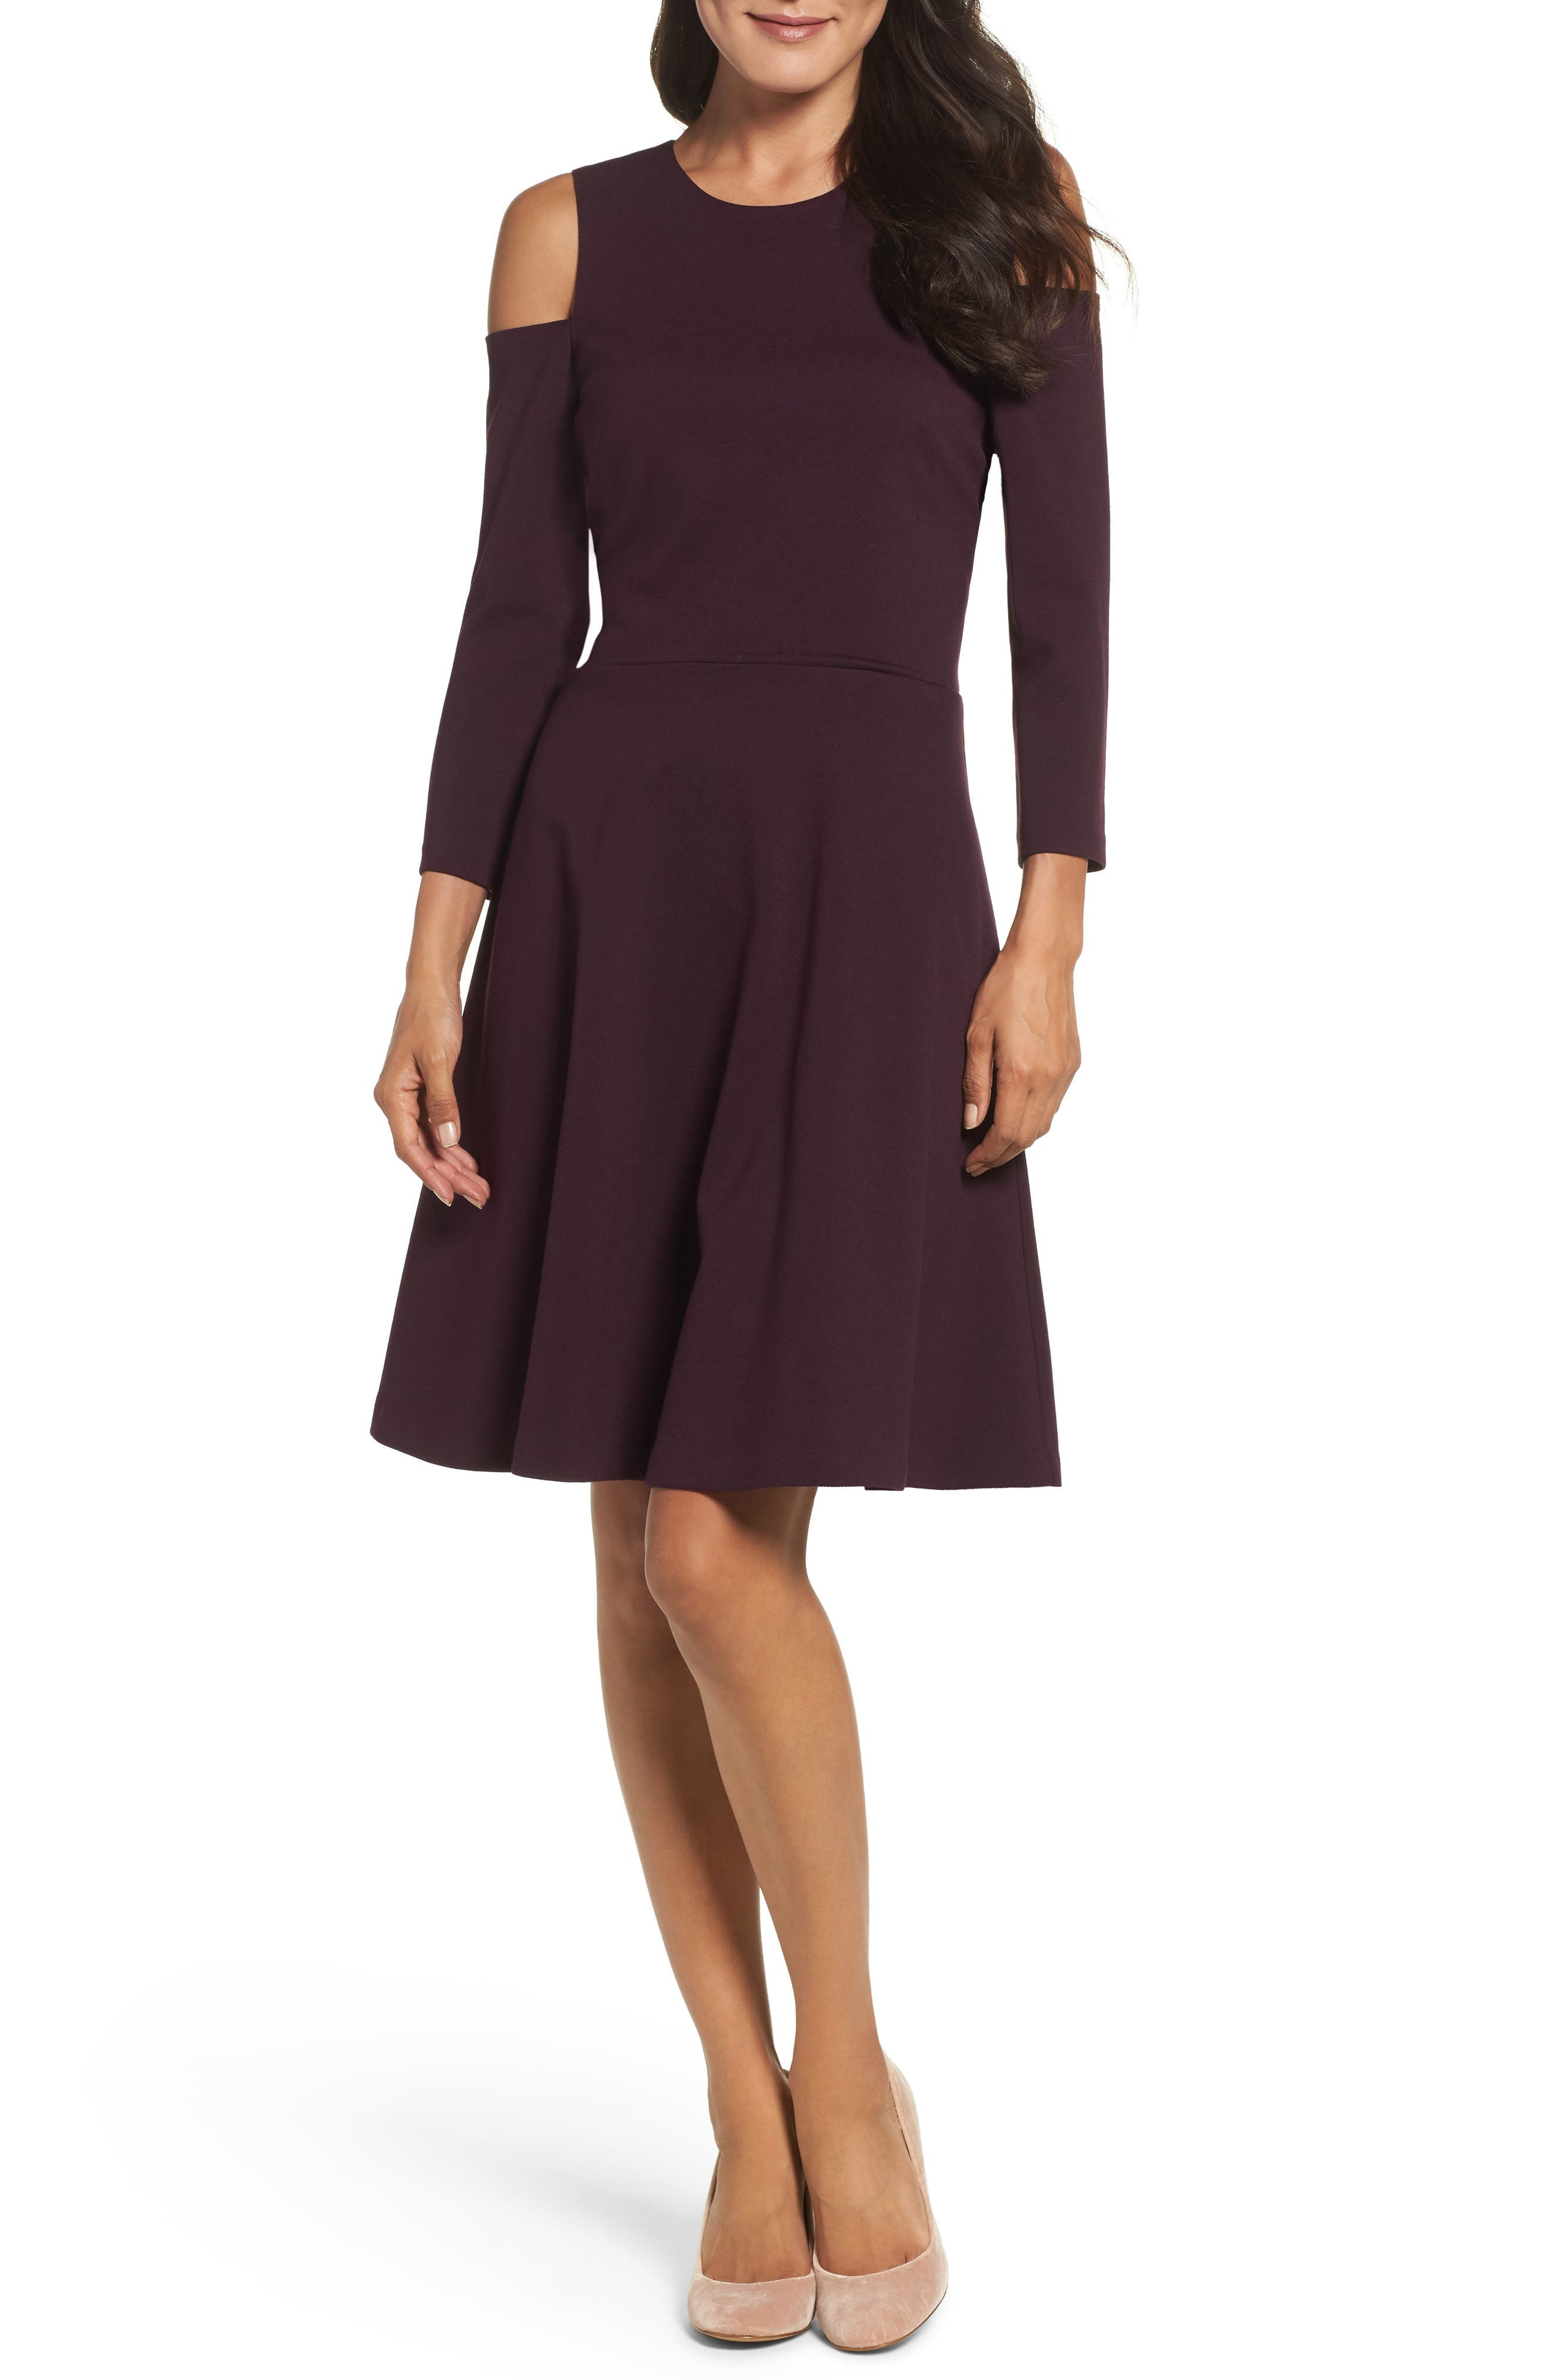 Black dress quarter sleeve - Black Dress Quarter Sleeve 15